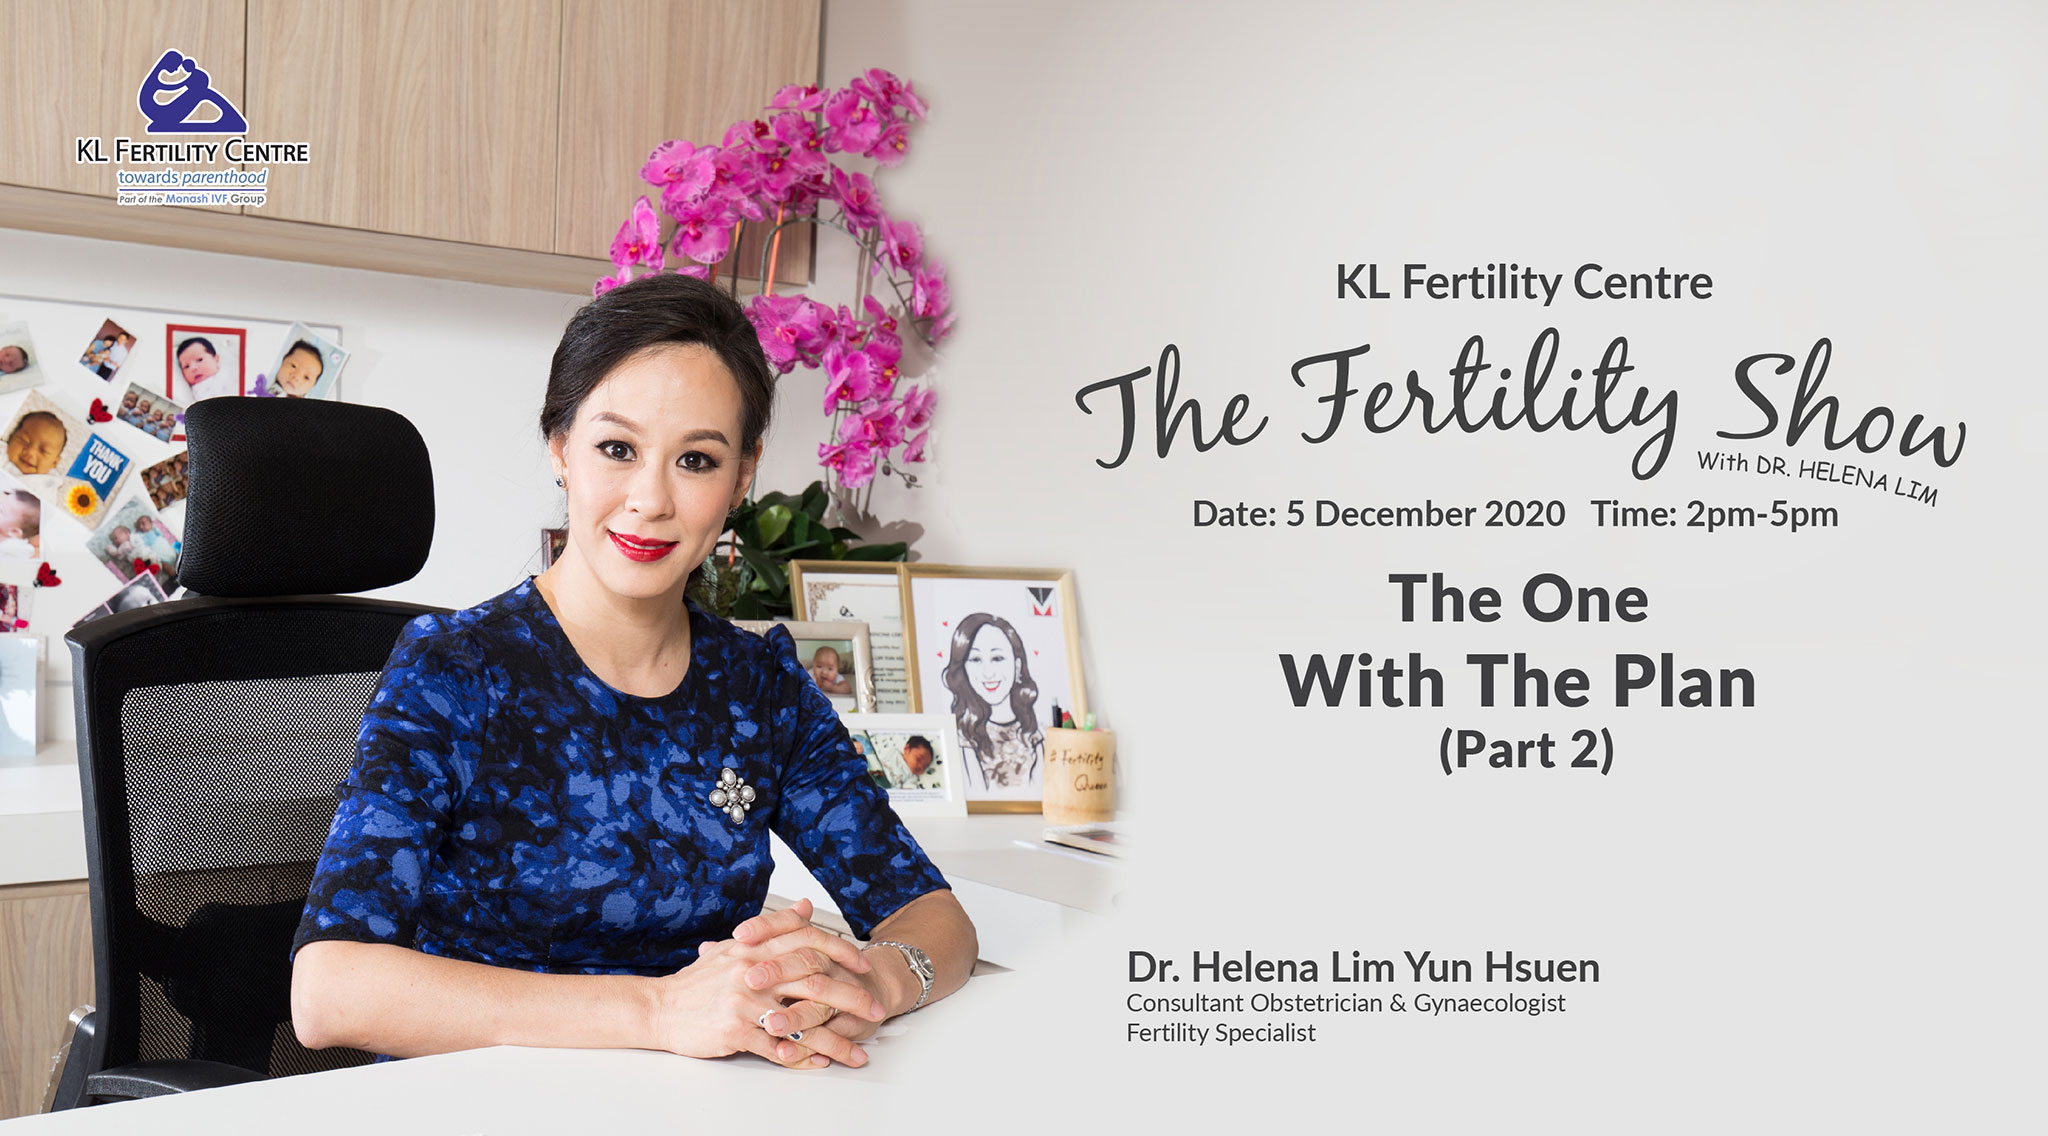 The Fertility Show : The One with the Plan, 05 December 2020 - Dr. Helena Lim